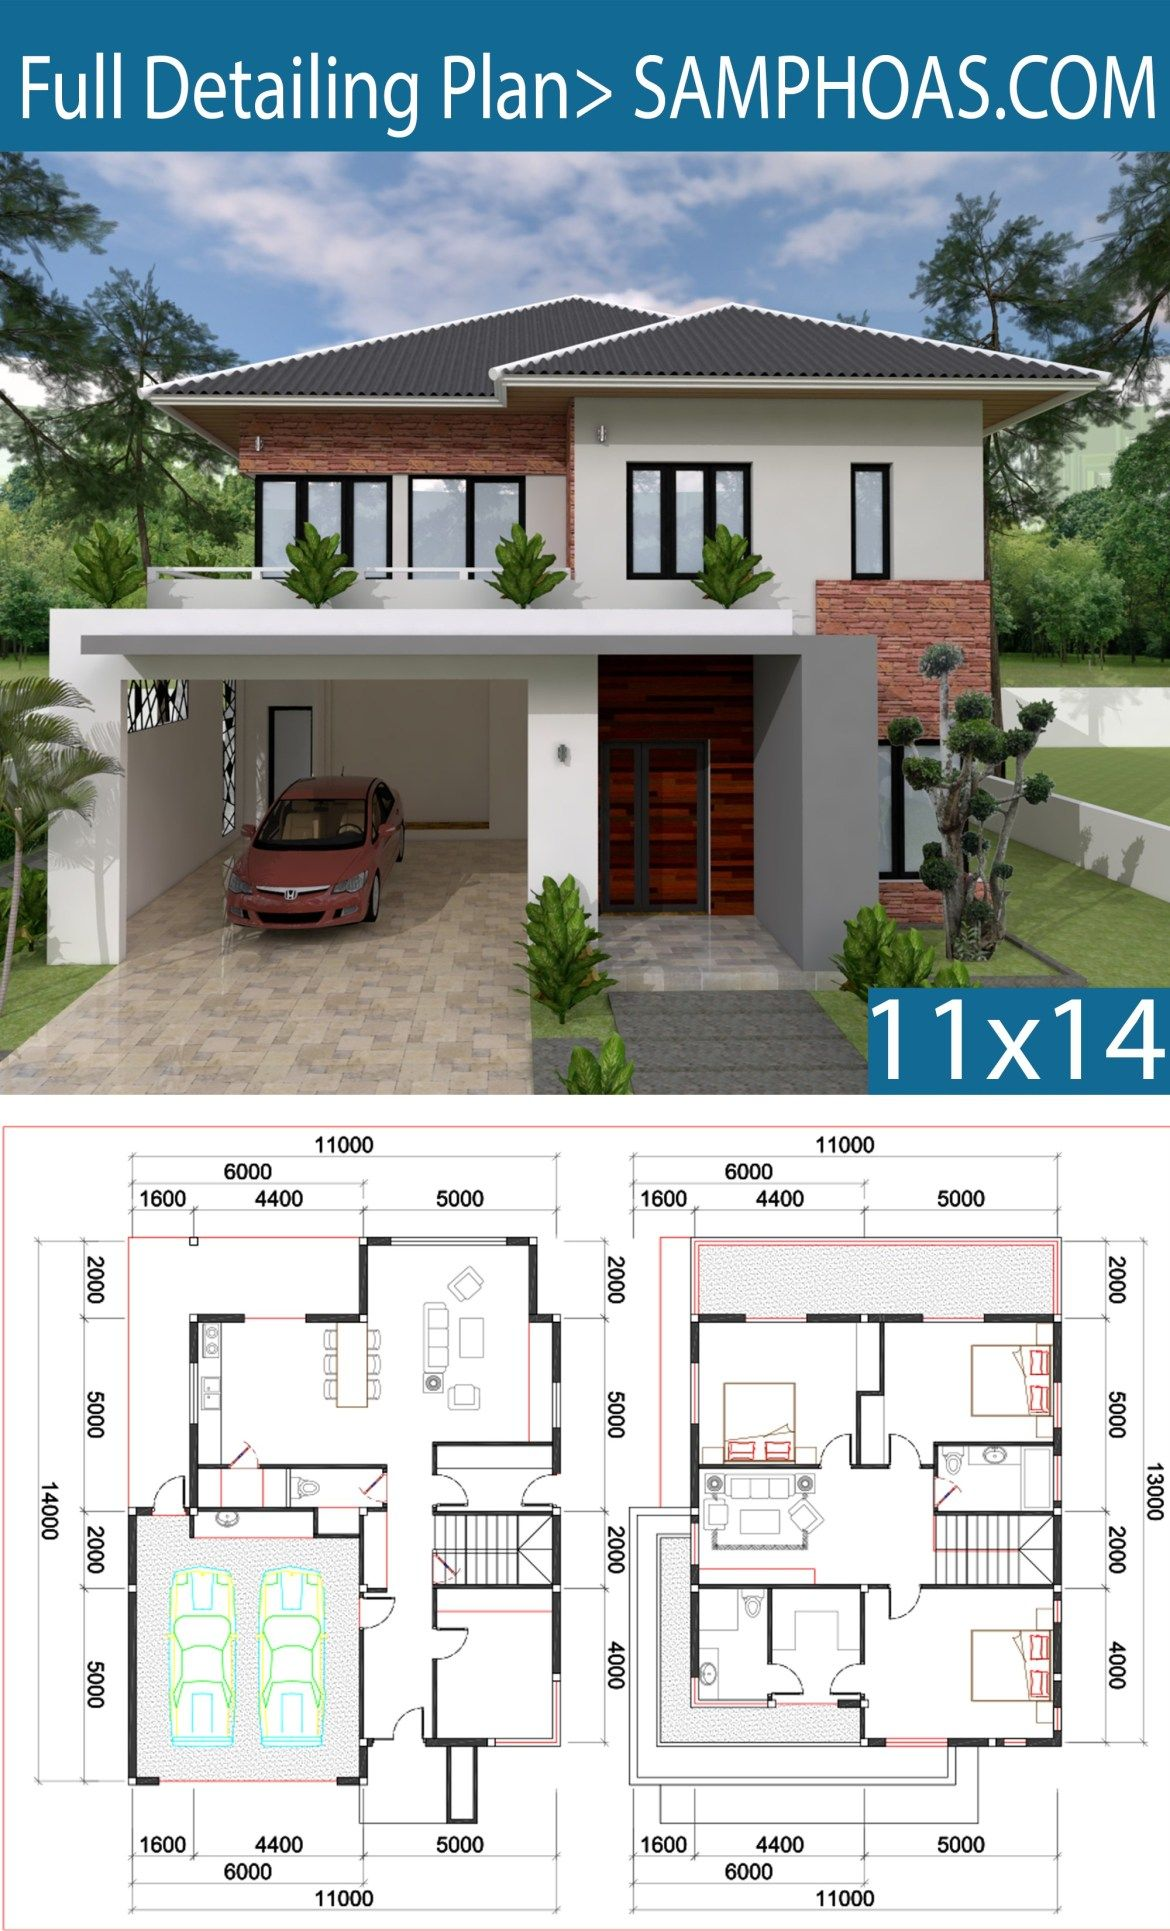 3 Bedroom Villa Design 11x13m Samphoas Plansearch Villa Design Architectural House Plans Model House Plan